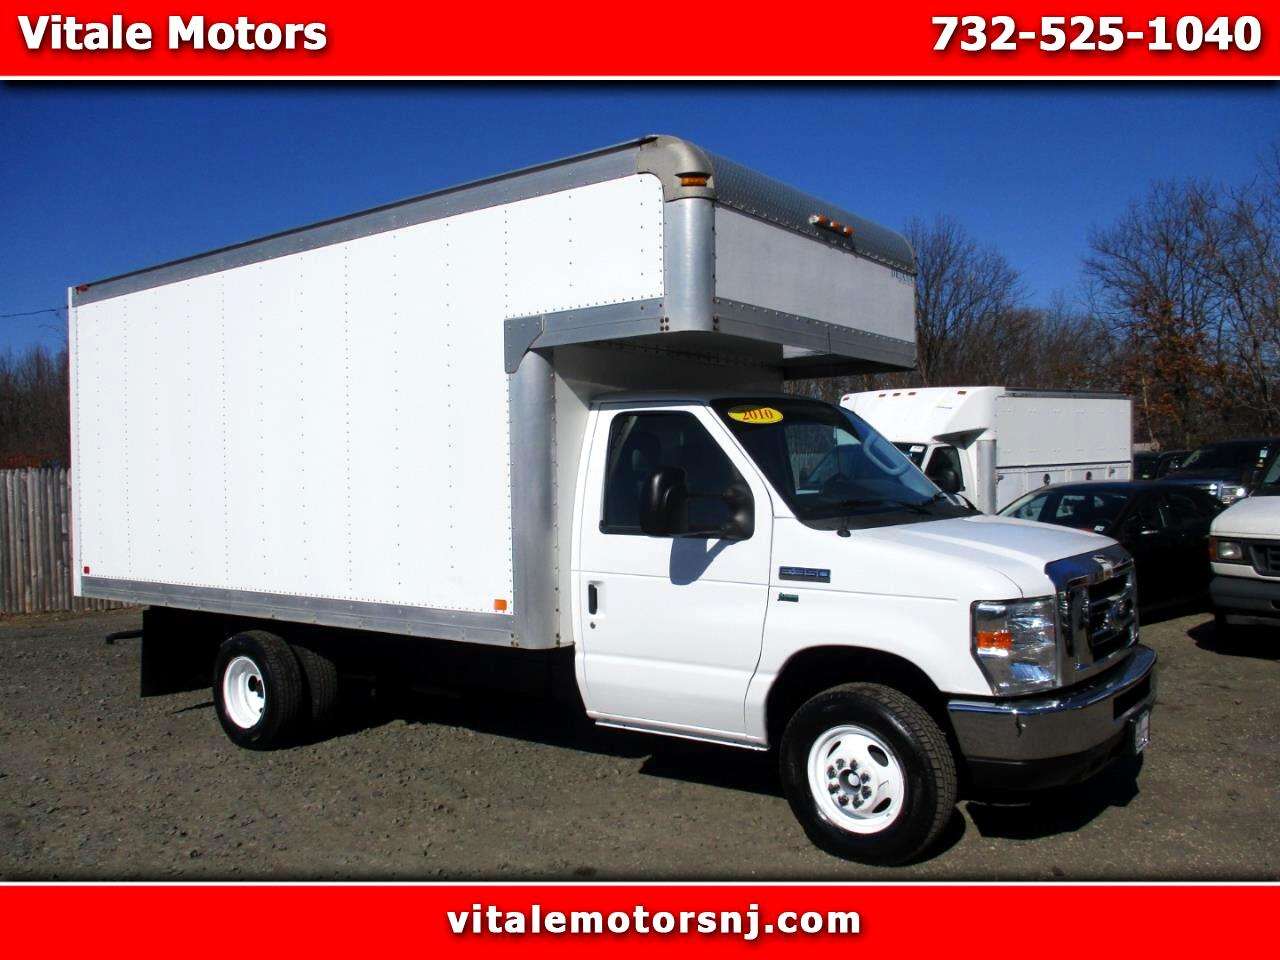 2010 Ford Econoline E-350 15 FOOT BOX W/ ATTIC BOX